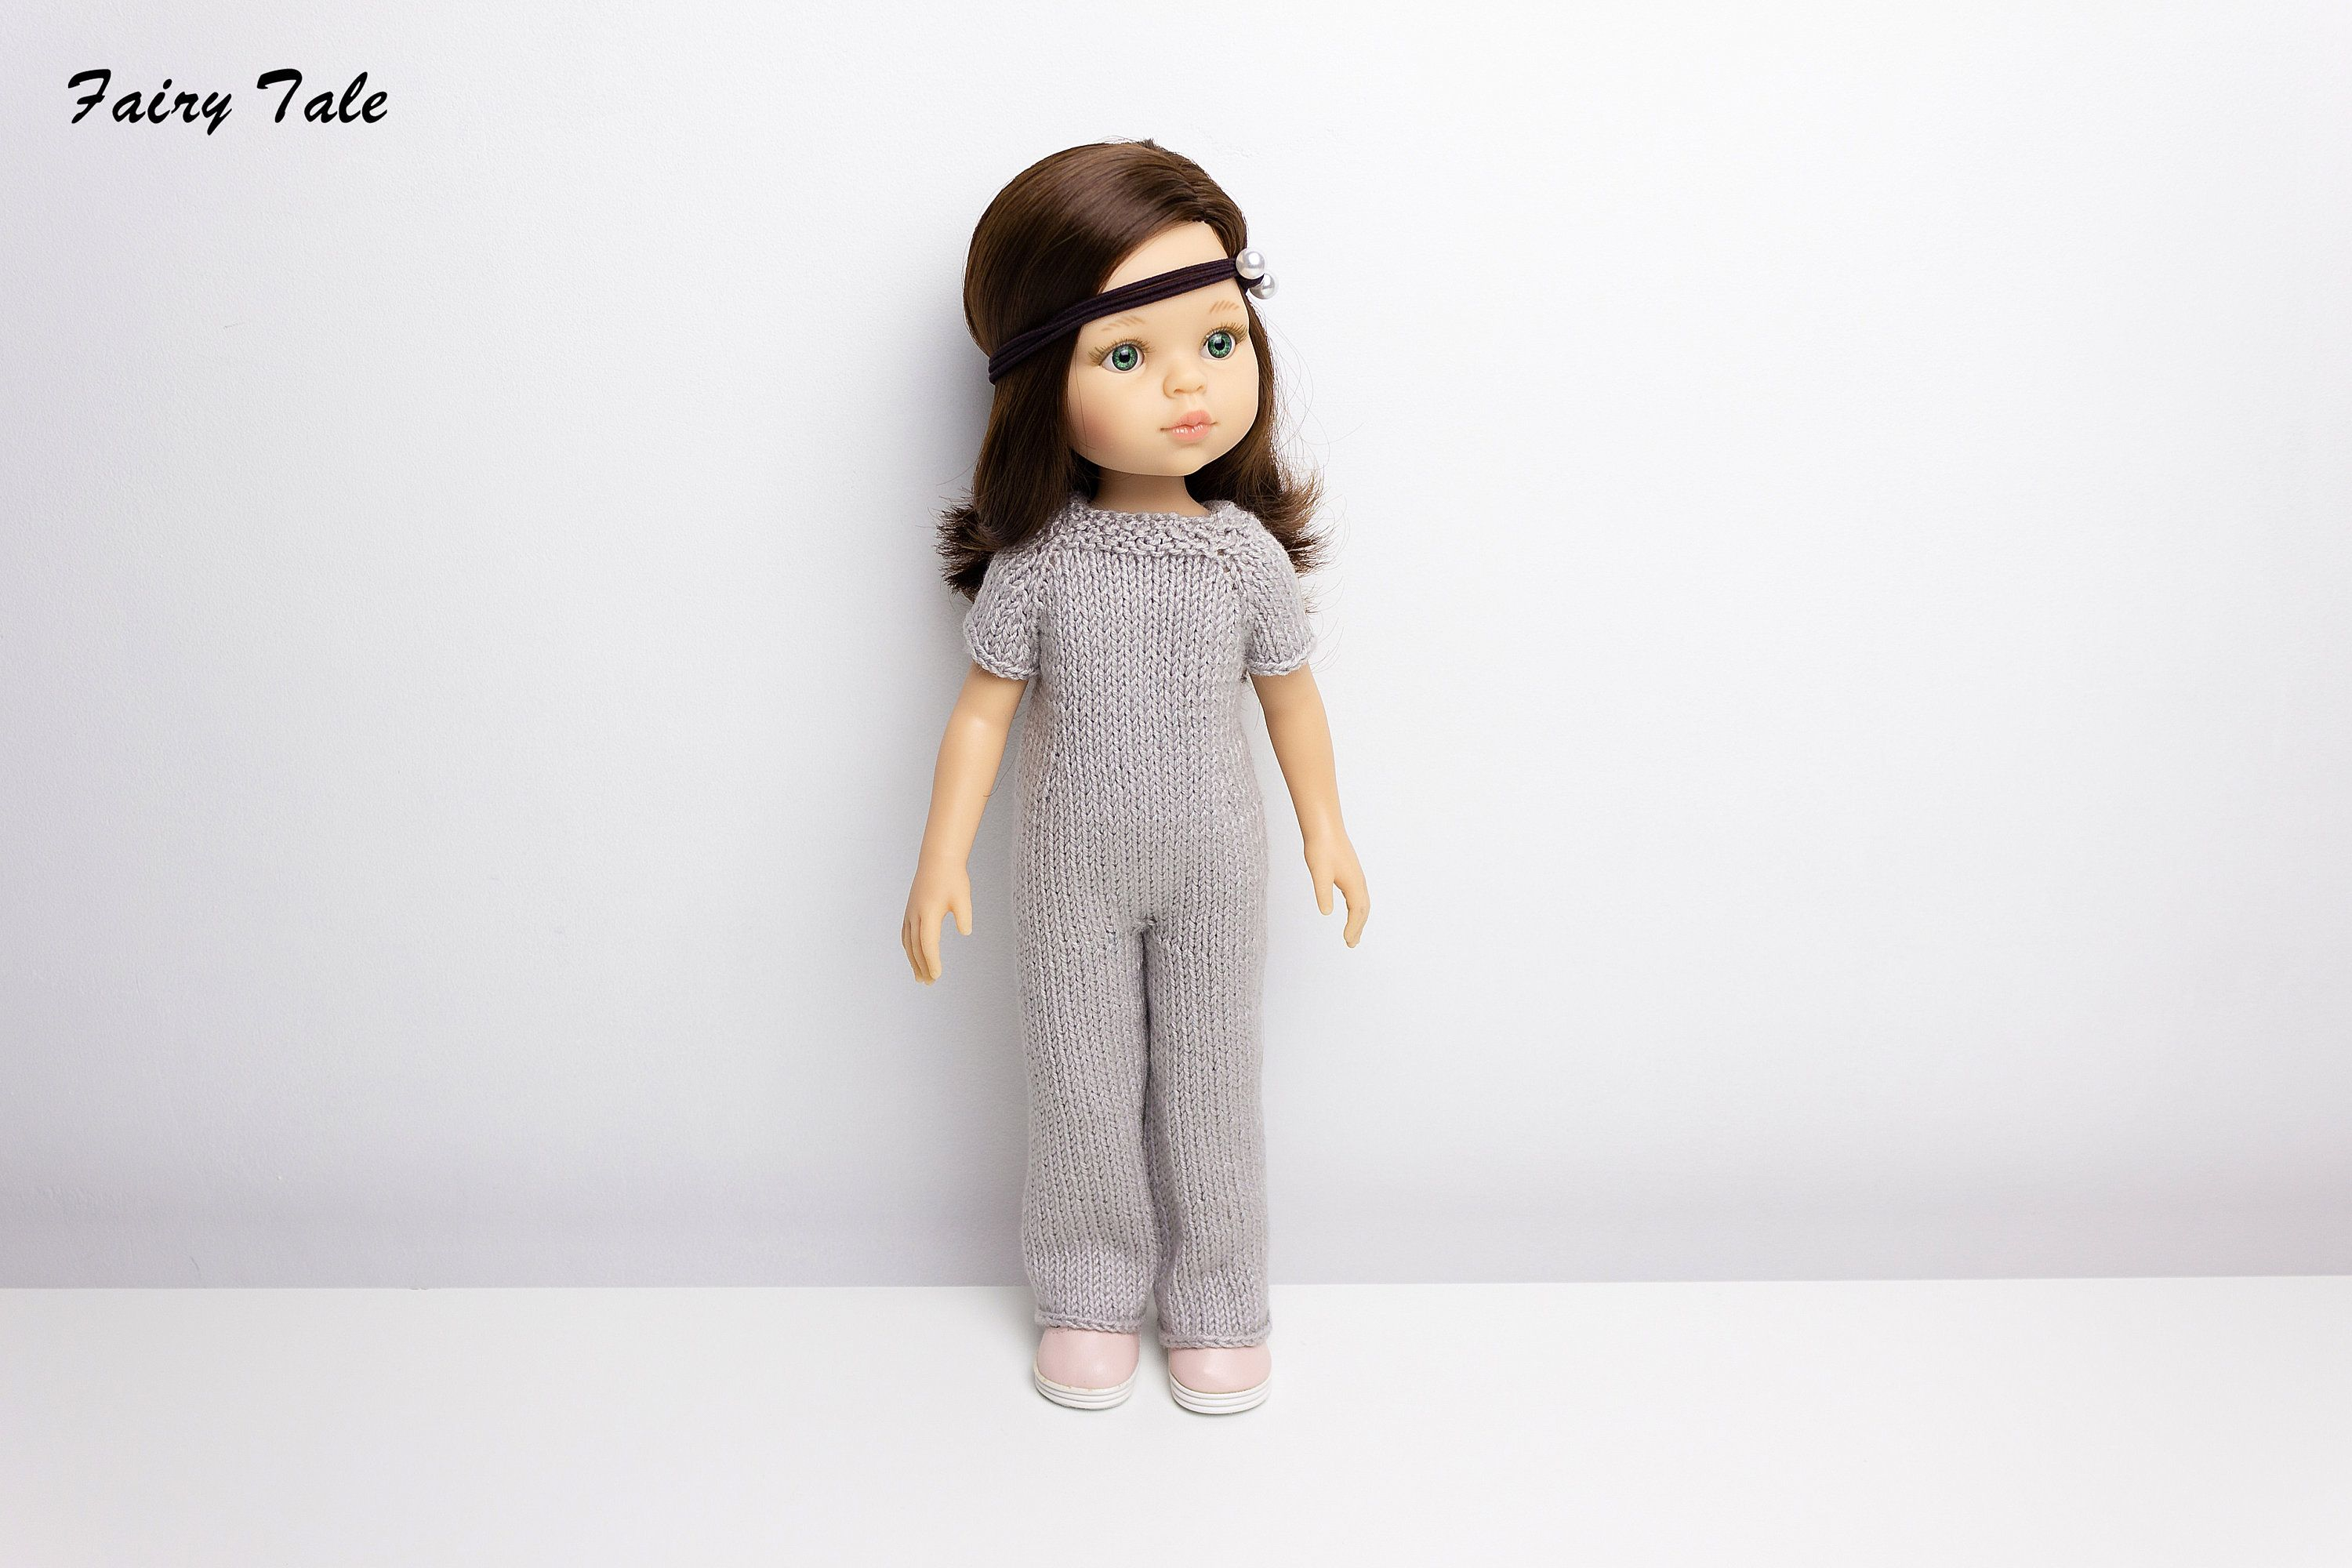 Paola Reina knit pattern Overalls knitting pattern for Paola Reina instand download PDF file beginner level